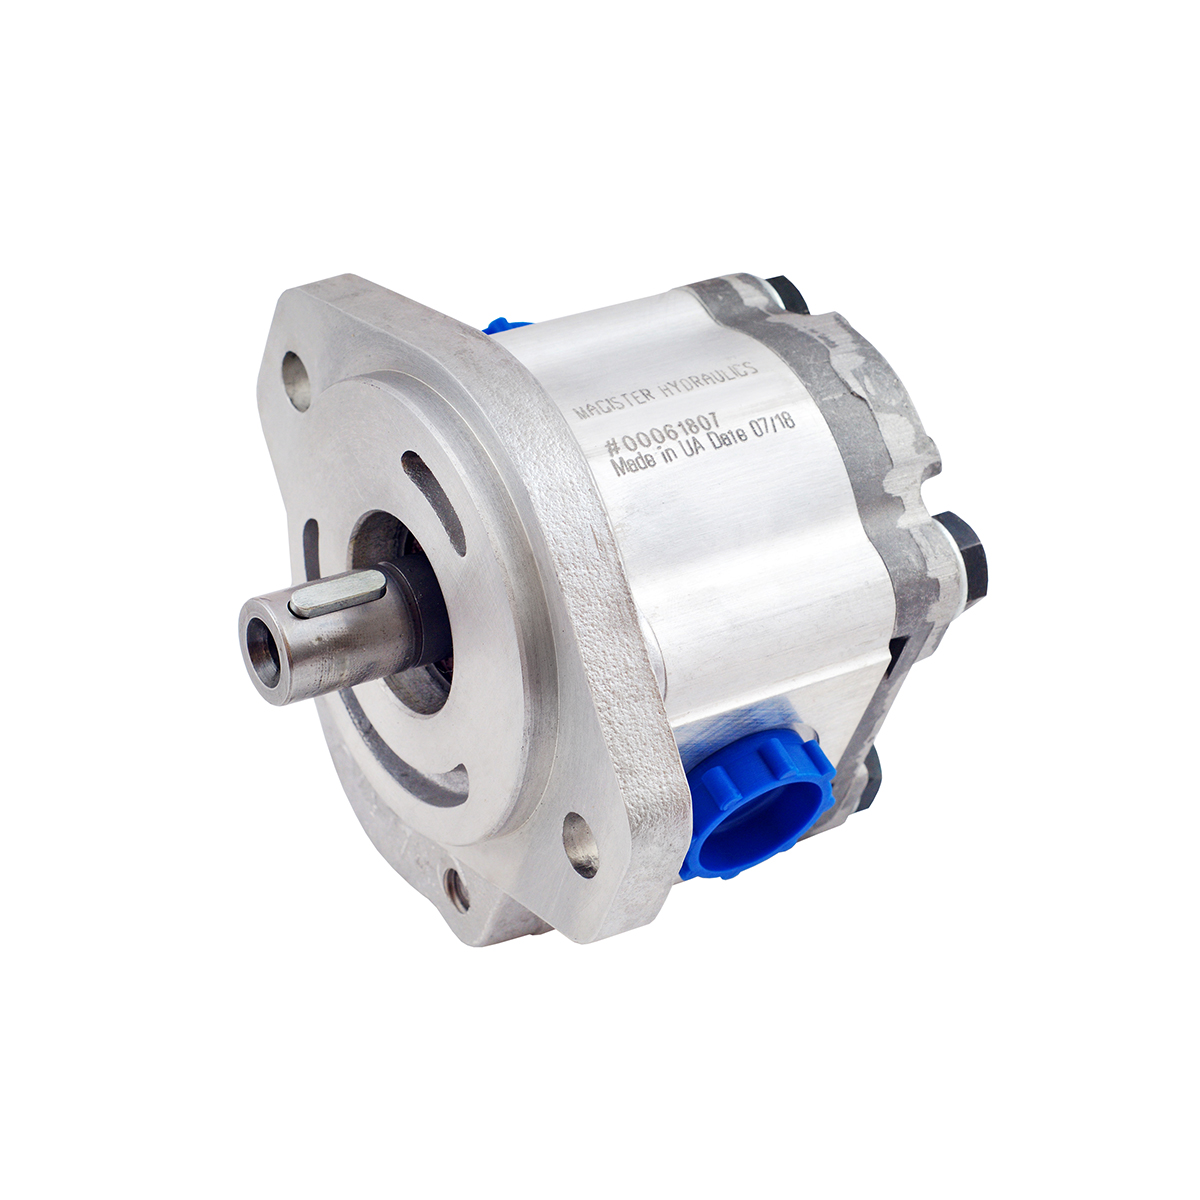 1.83 CID hydraulic gear pump, 7/8 keyed shaft clockwise gear pump | Magister Hydraulics